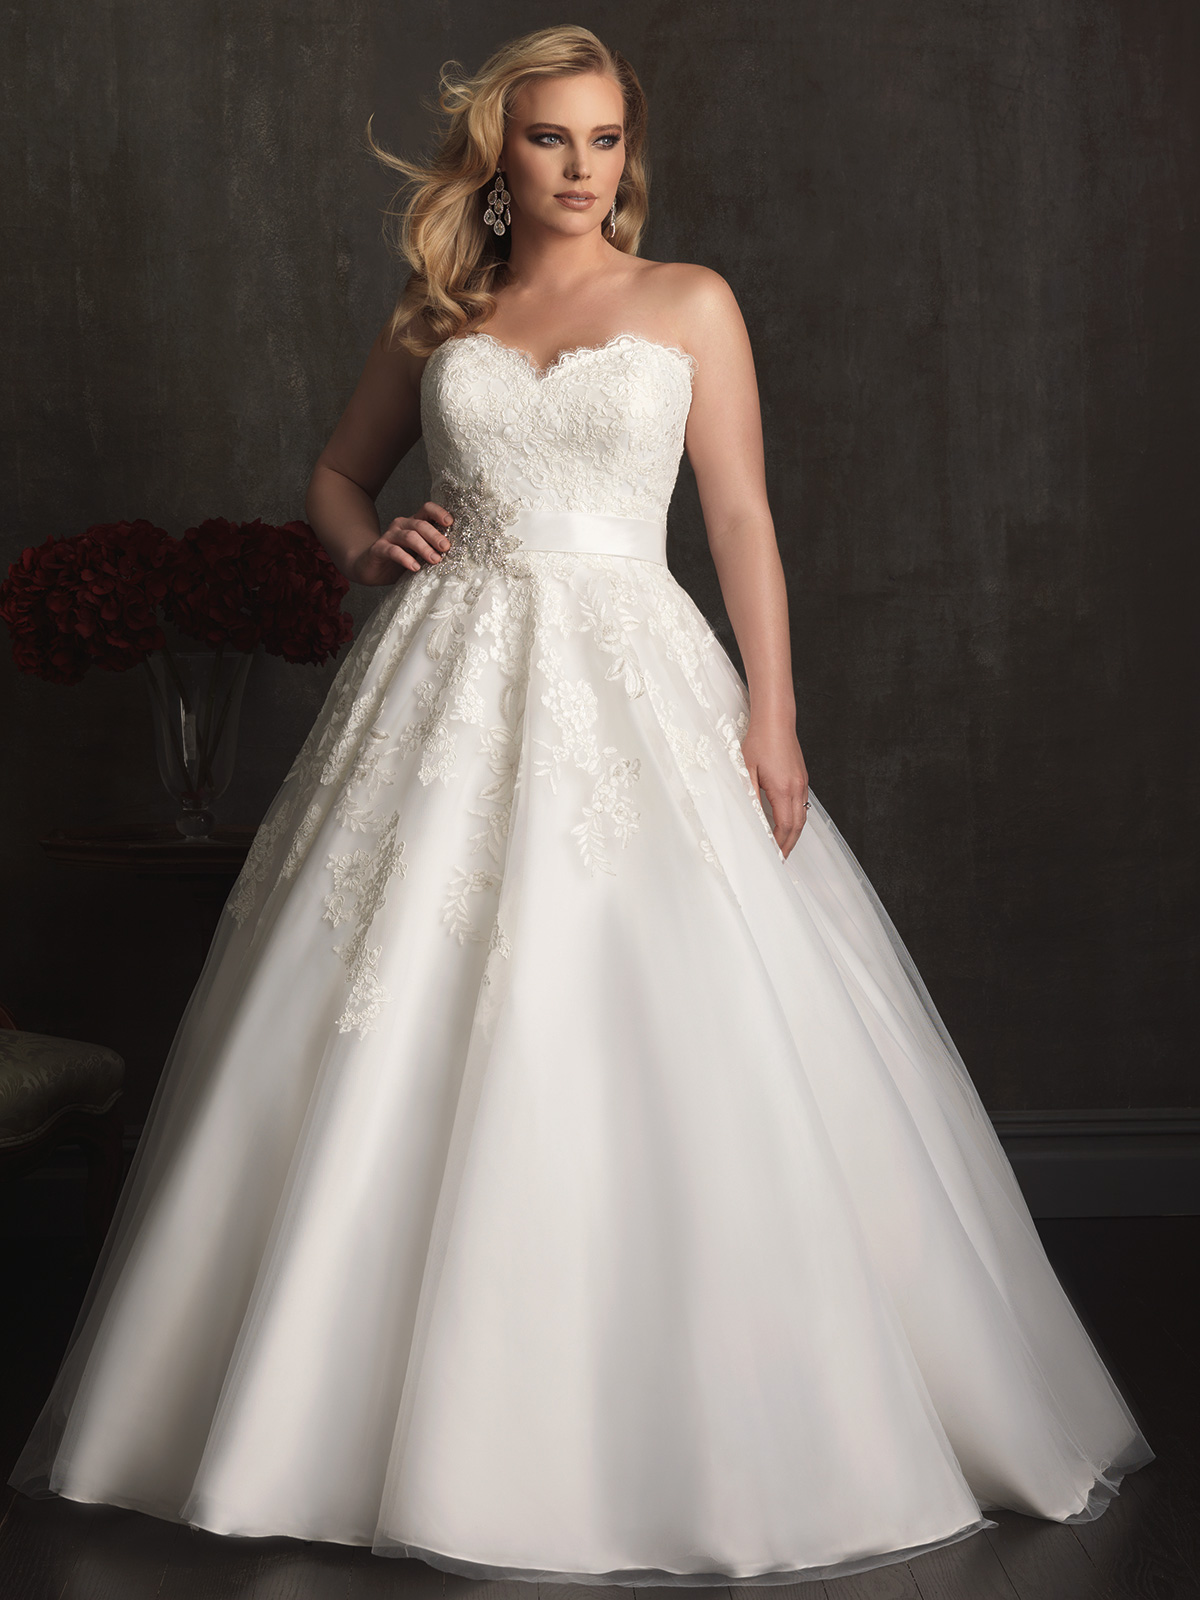 Sweetheart ball gown allure women bridal gown w320 for Wedding dresses for womens